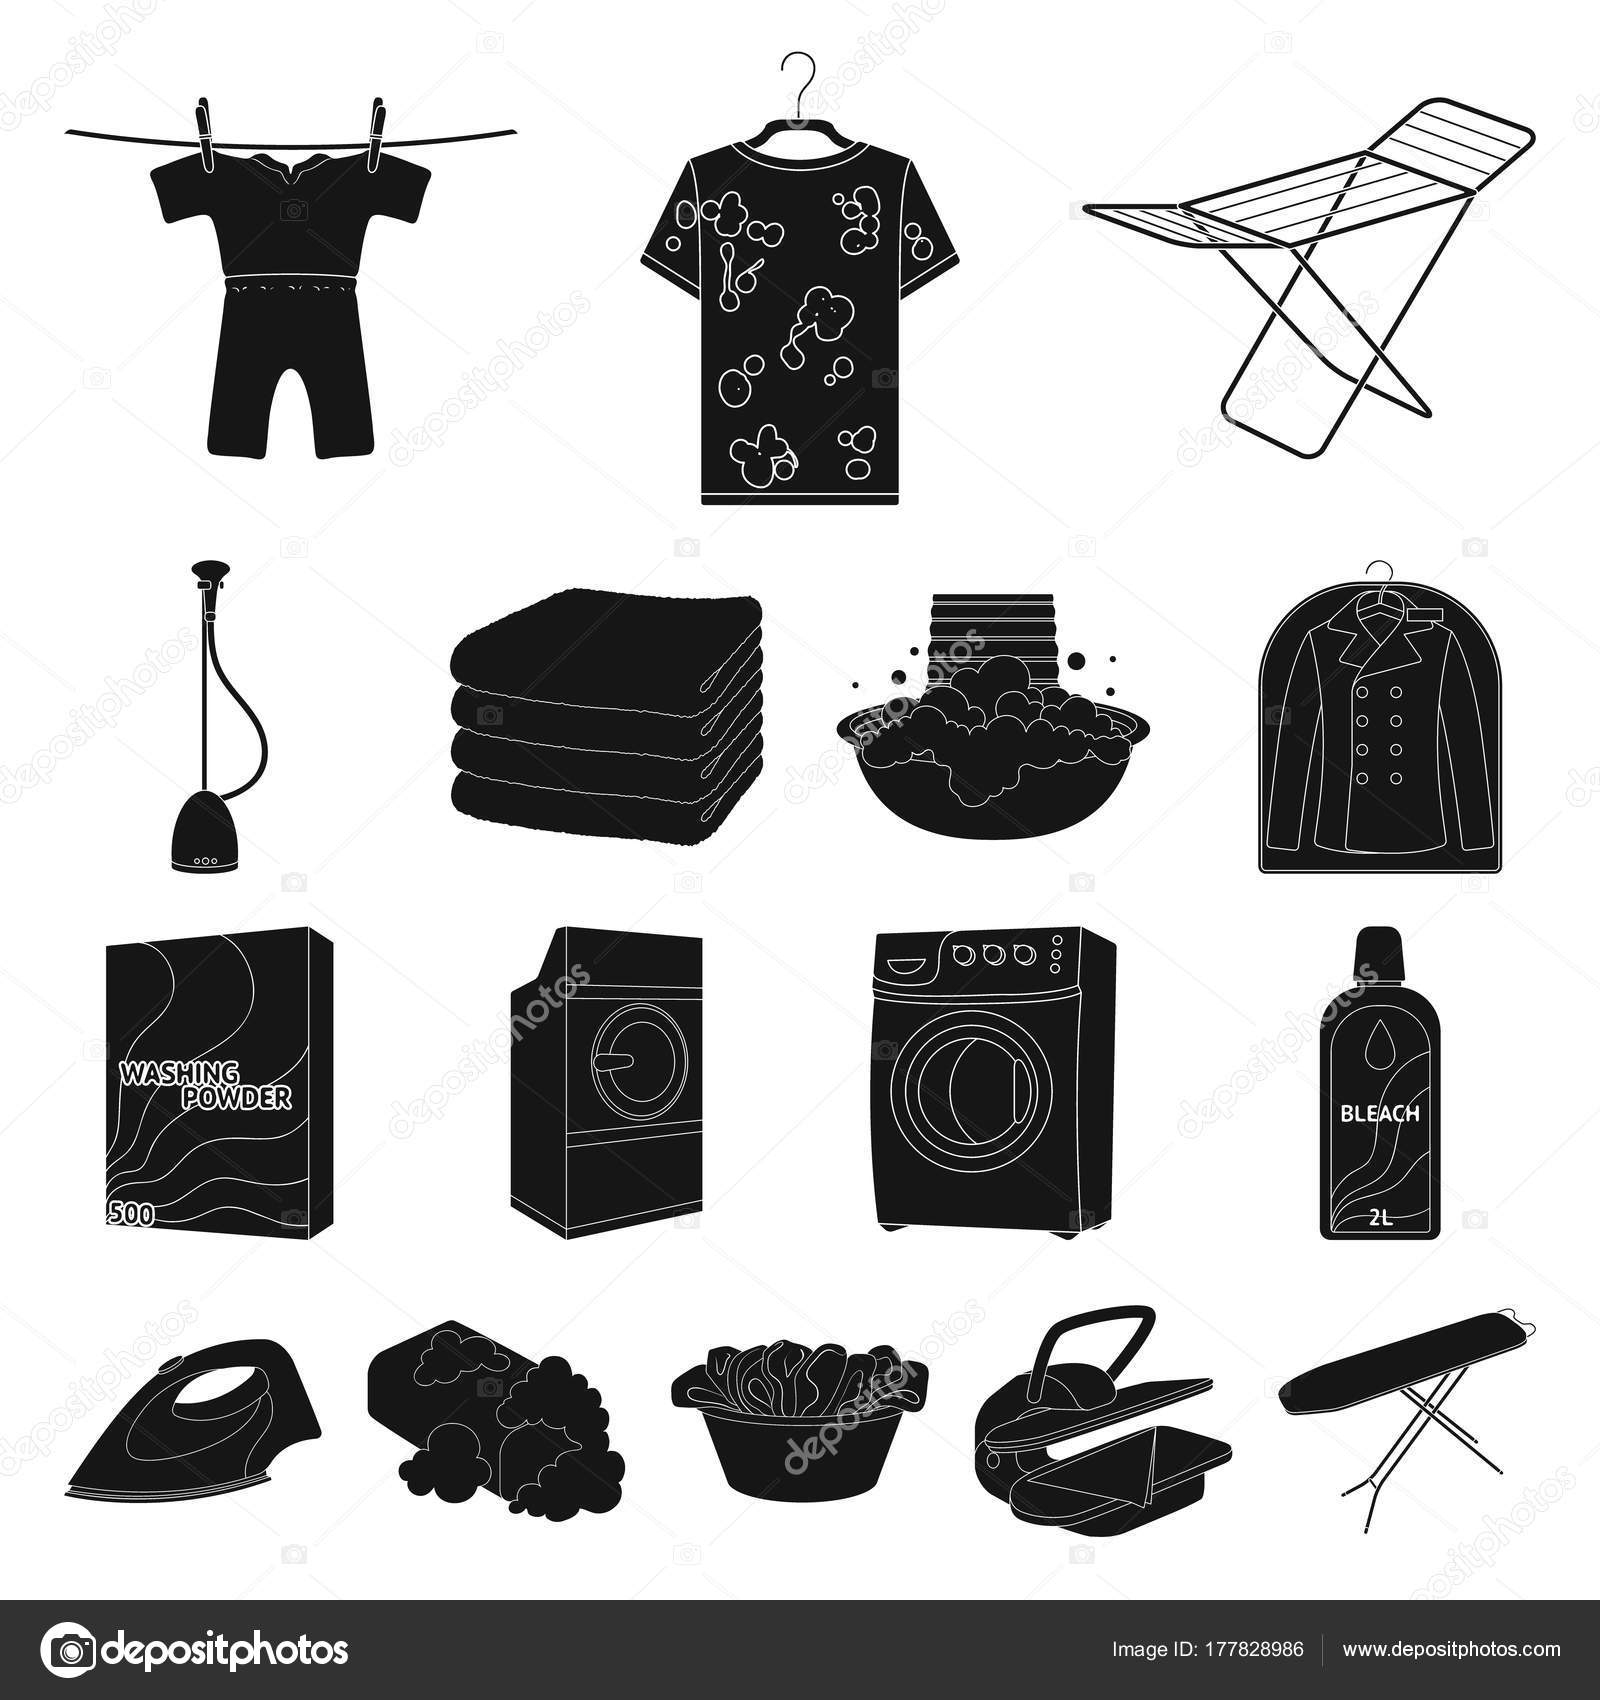 Dry Cleaning Equipment Black Icons In Set Collection For Design